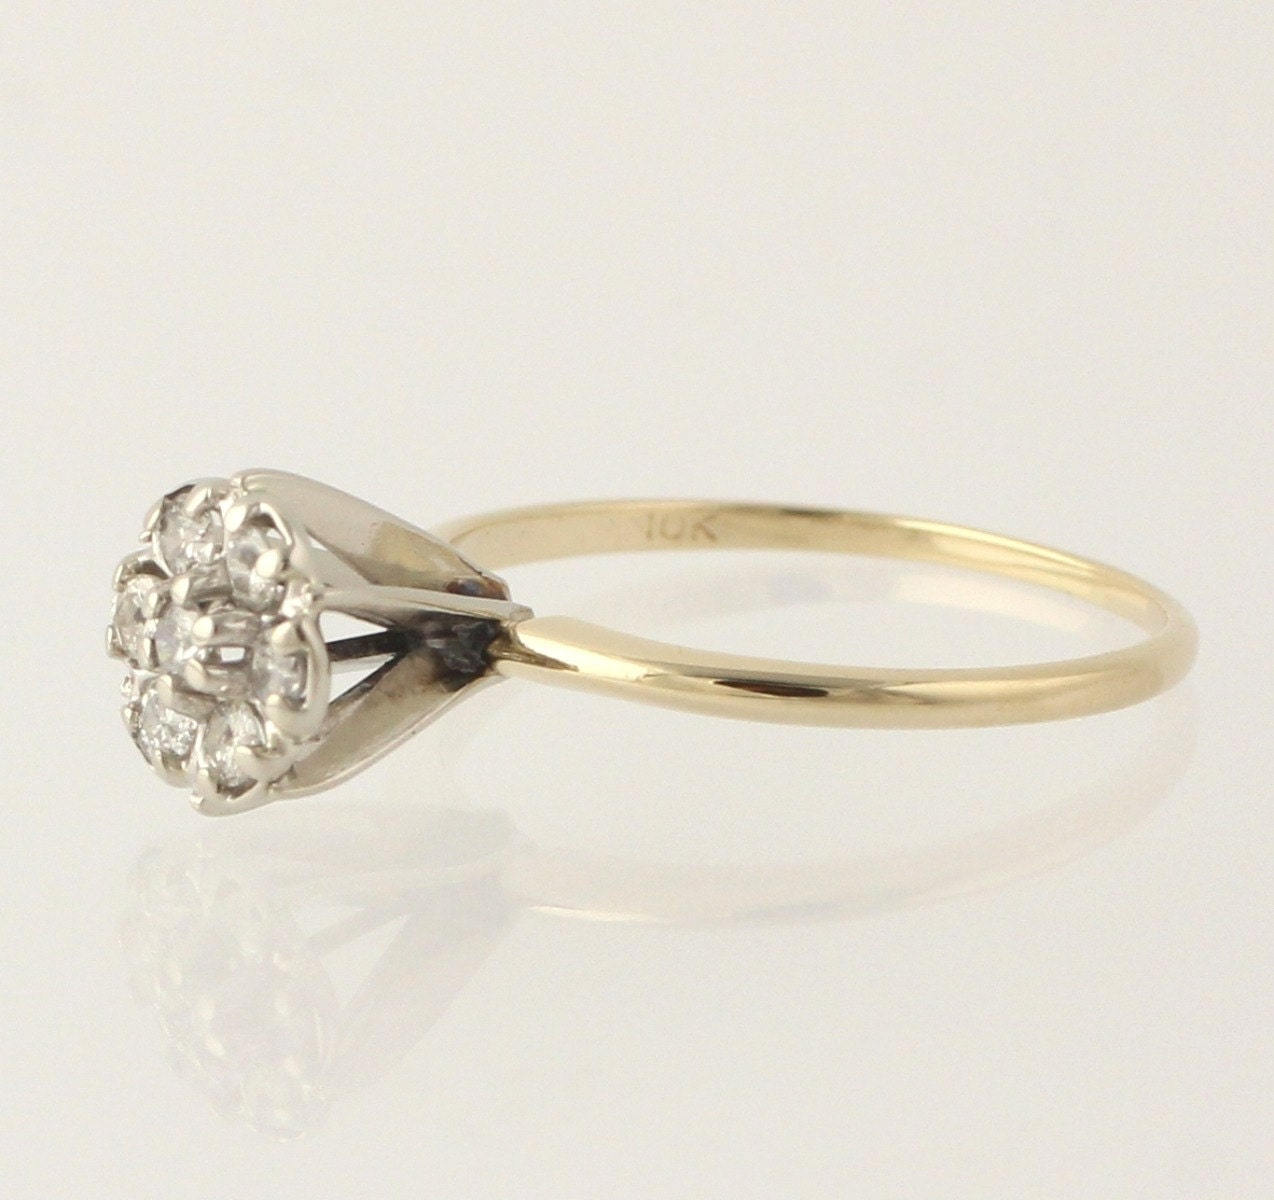 Vintage Antique Diamond Ring Engagement Ring Right Hand Ring